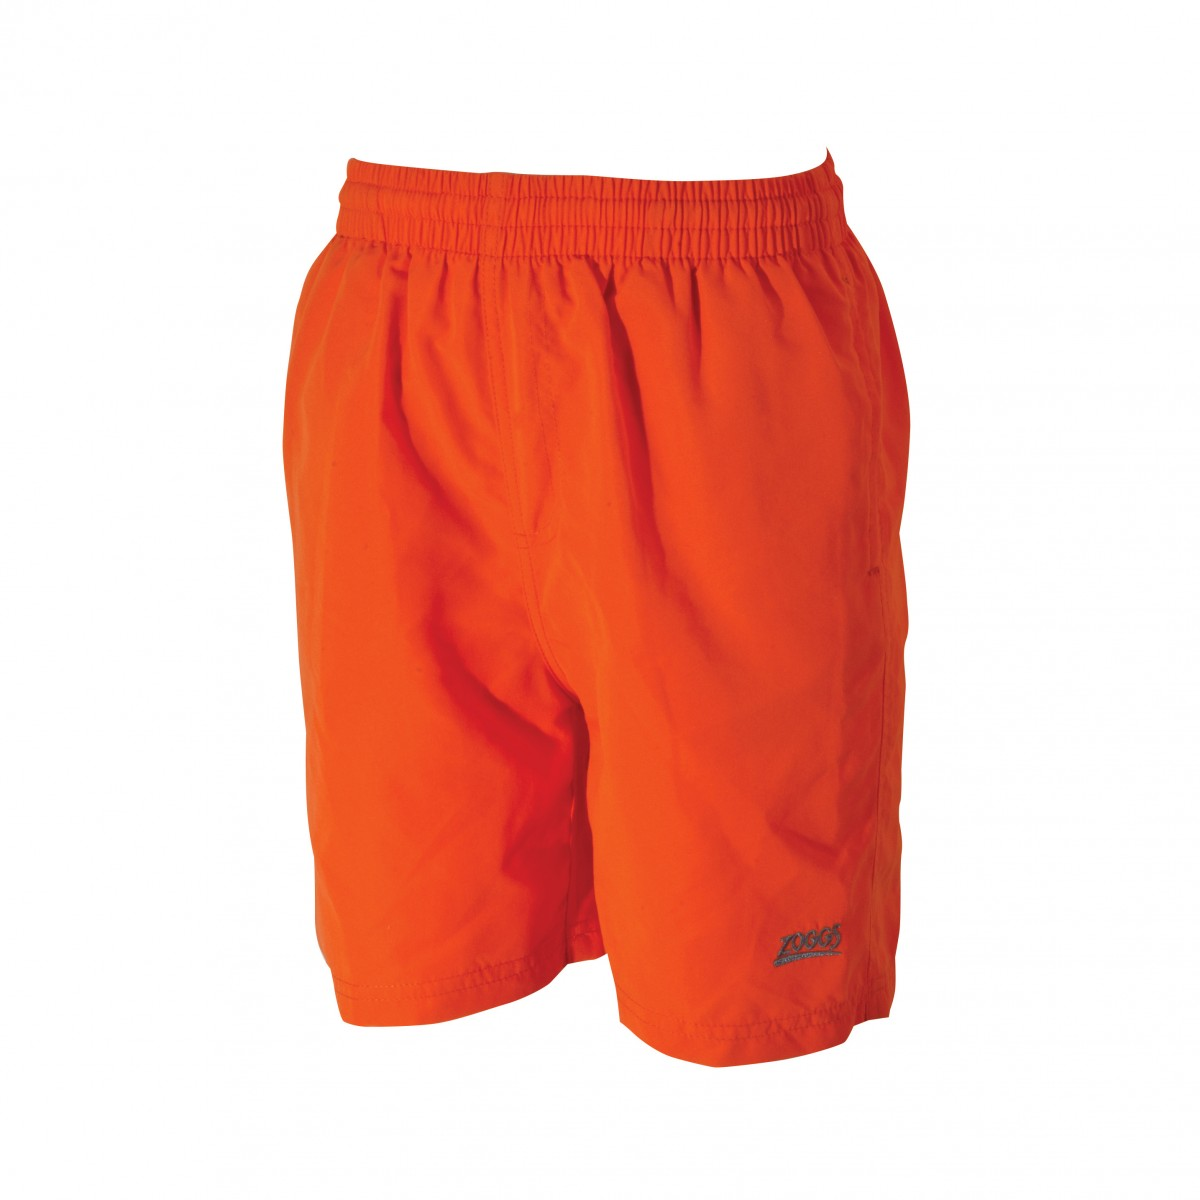 Zoggs Boys Penrith 15 Watershorts - Orange